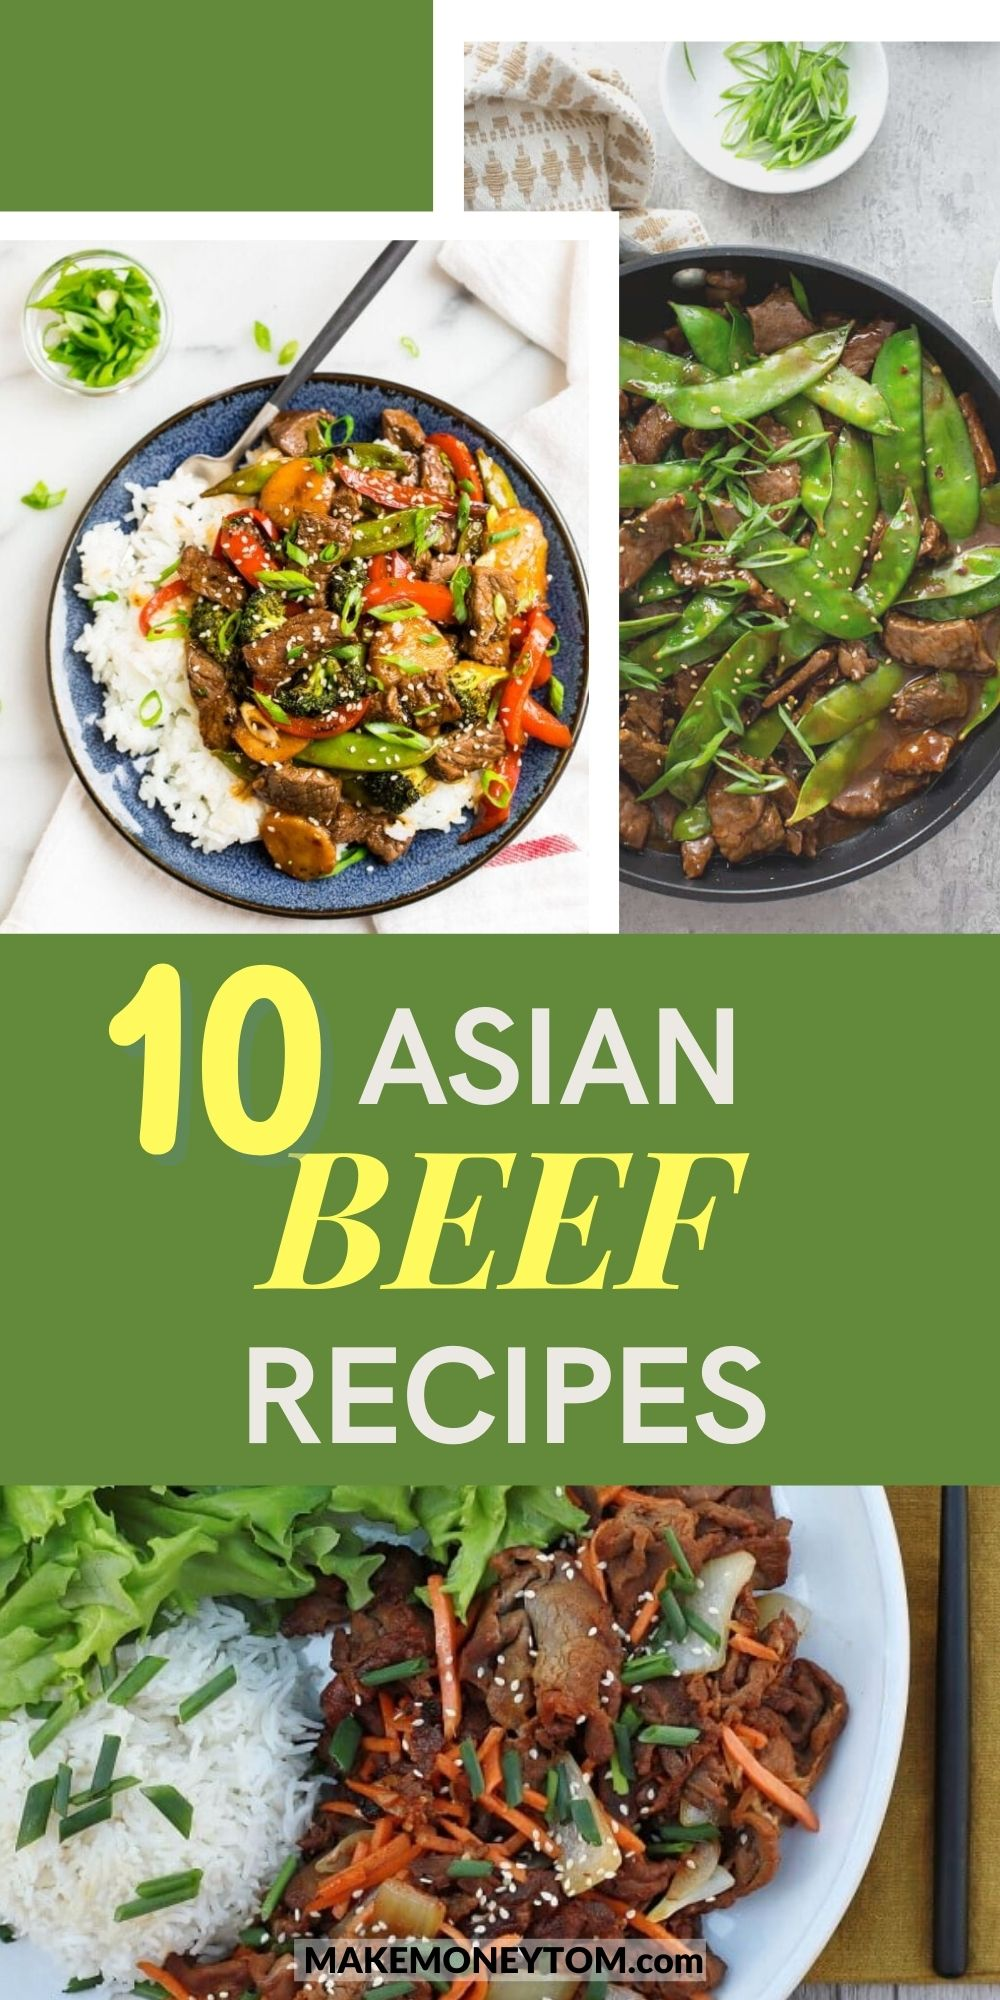 10 Best Asian Beef Recipes - Healthy Asian Recipes